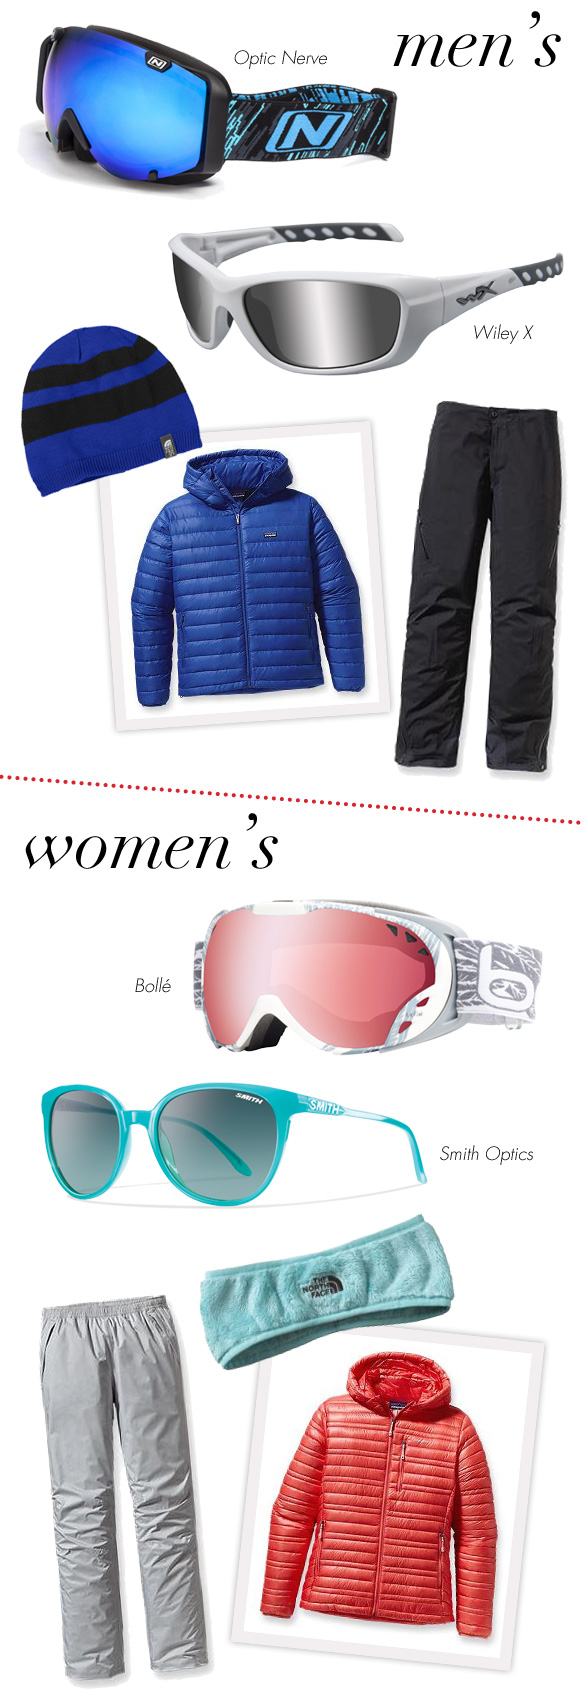 Optic Nerve (Boreas), Wiley X (Gravity), Bollé (Duchess), Smith Optics (Cheetah)